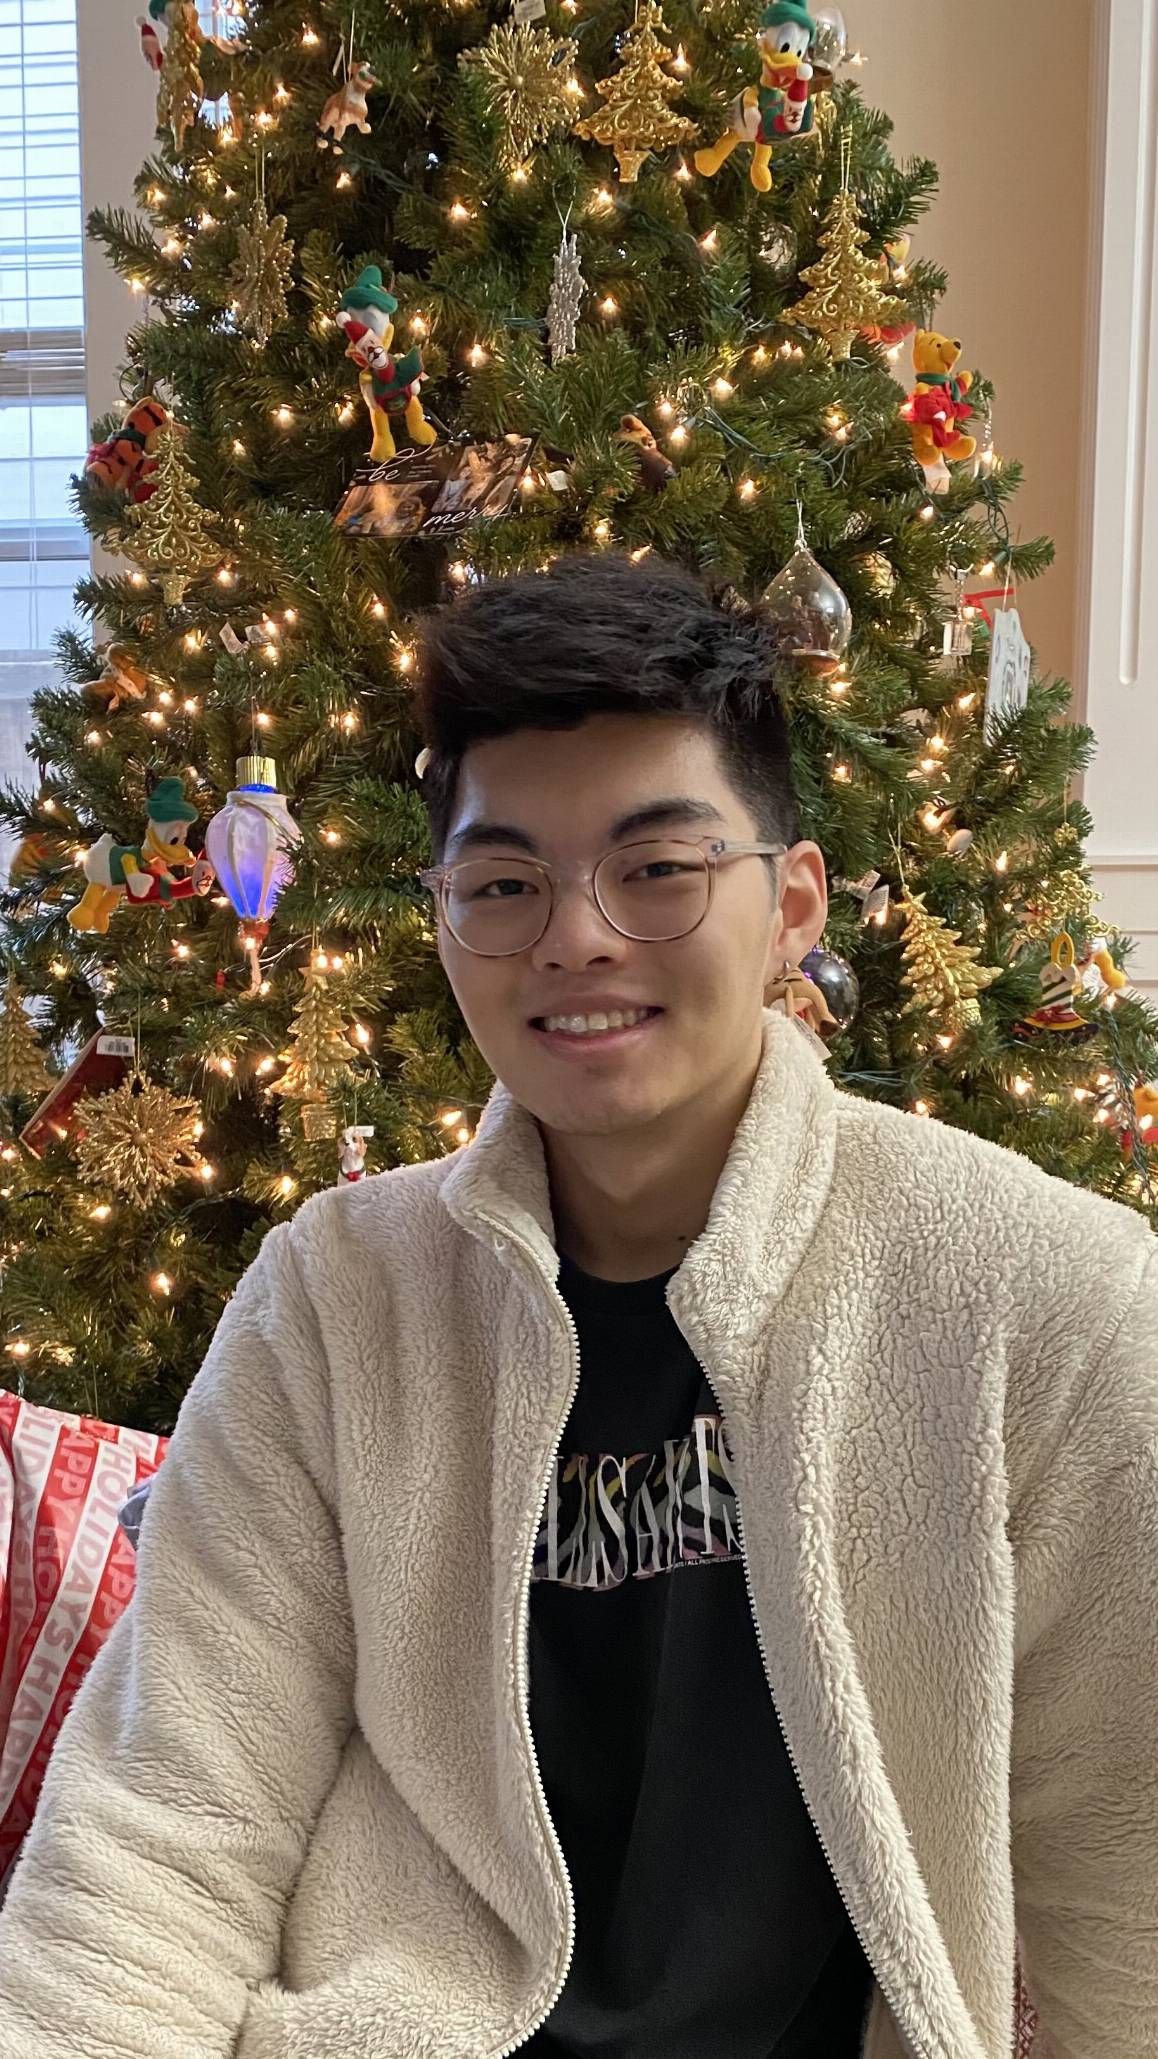 Eric Chung in front of a Christmas tree. He